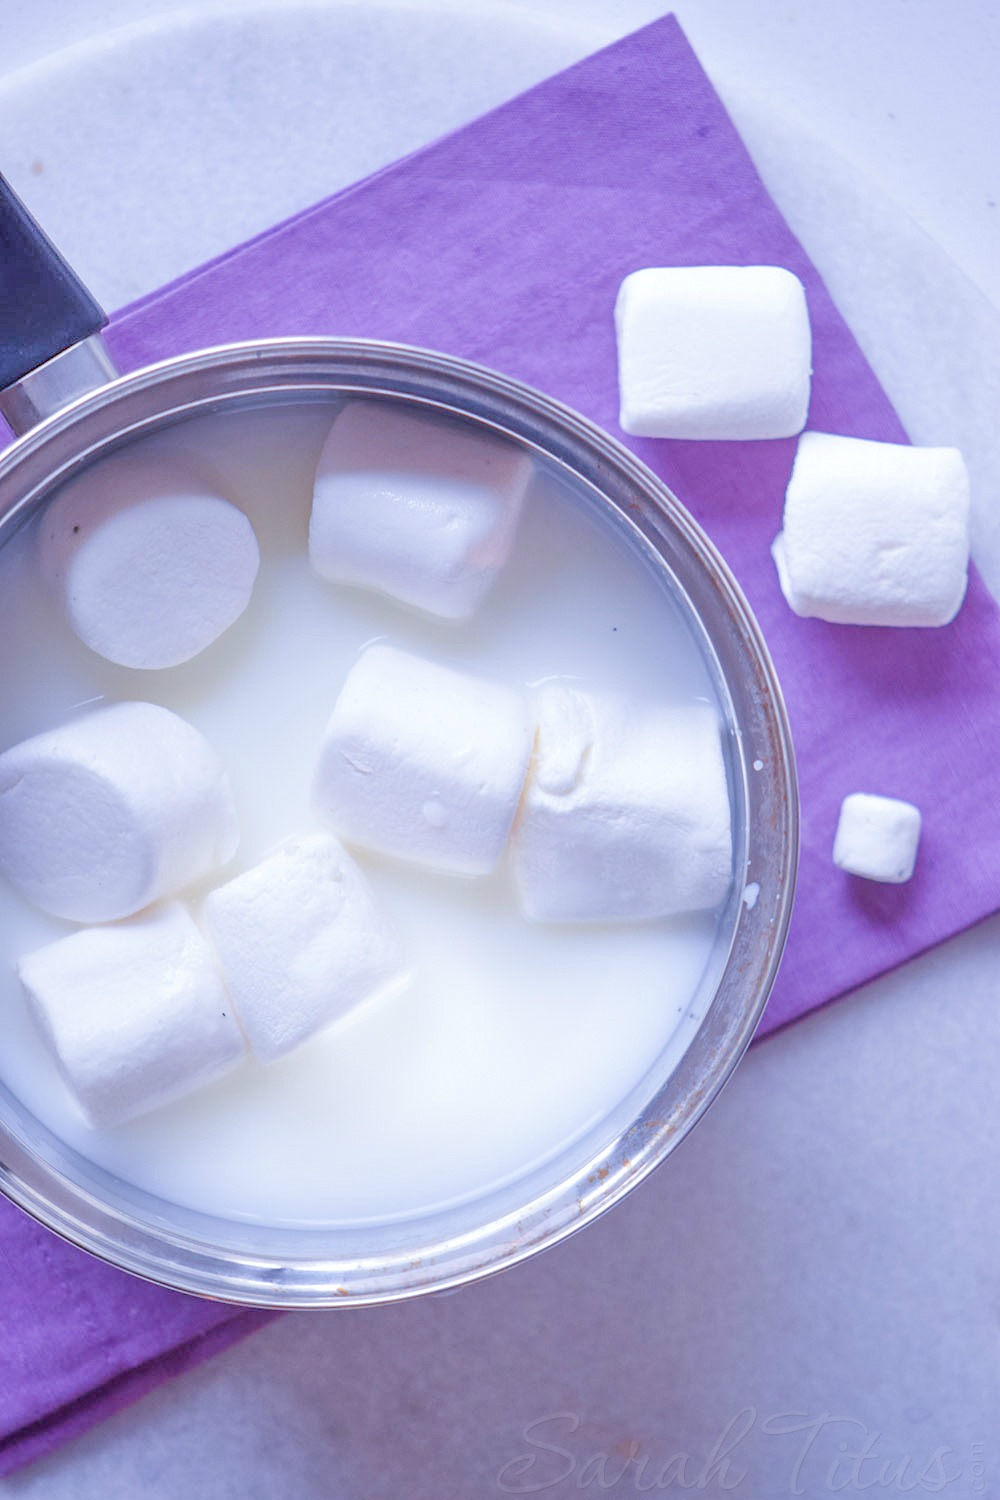 Milk and marshmallows melting in a saucepan with marshmallows on the side on a purple cloth napkin